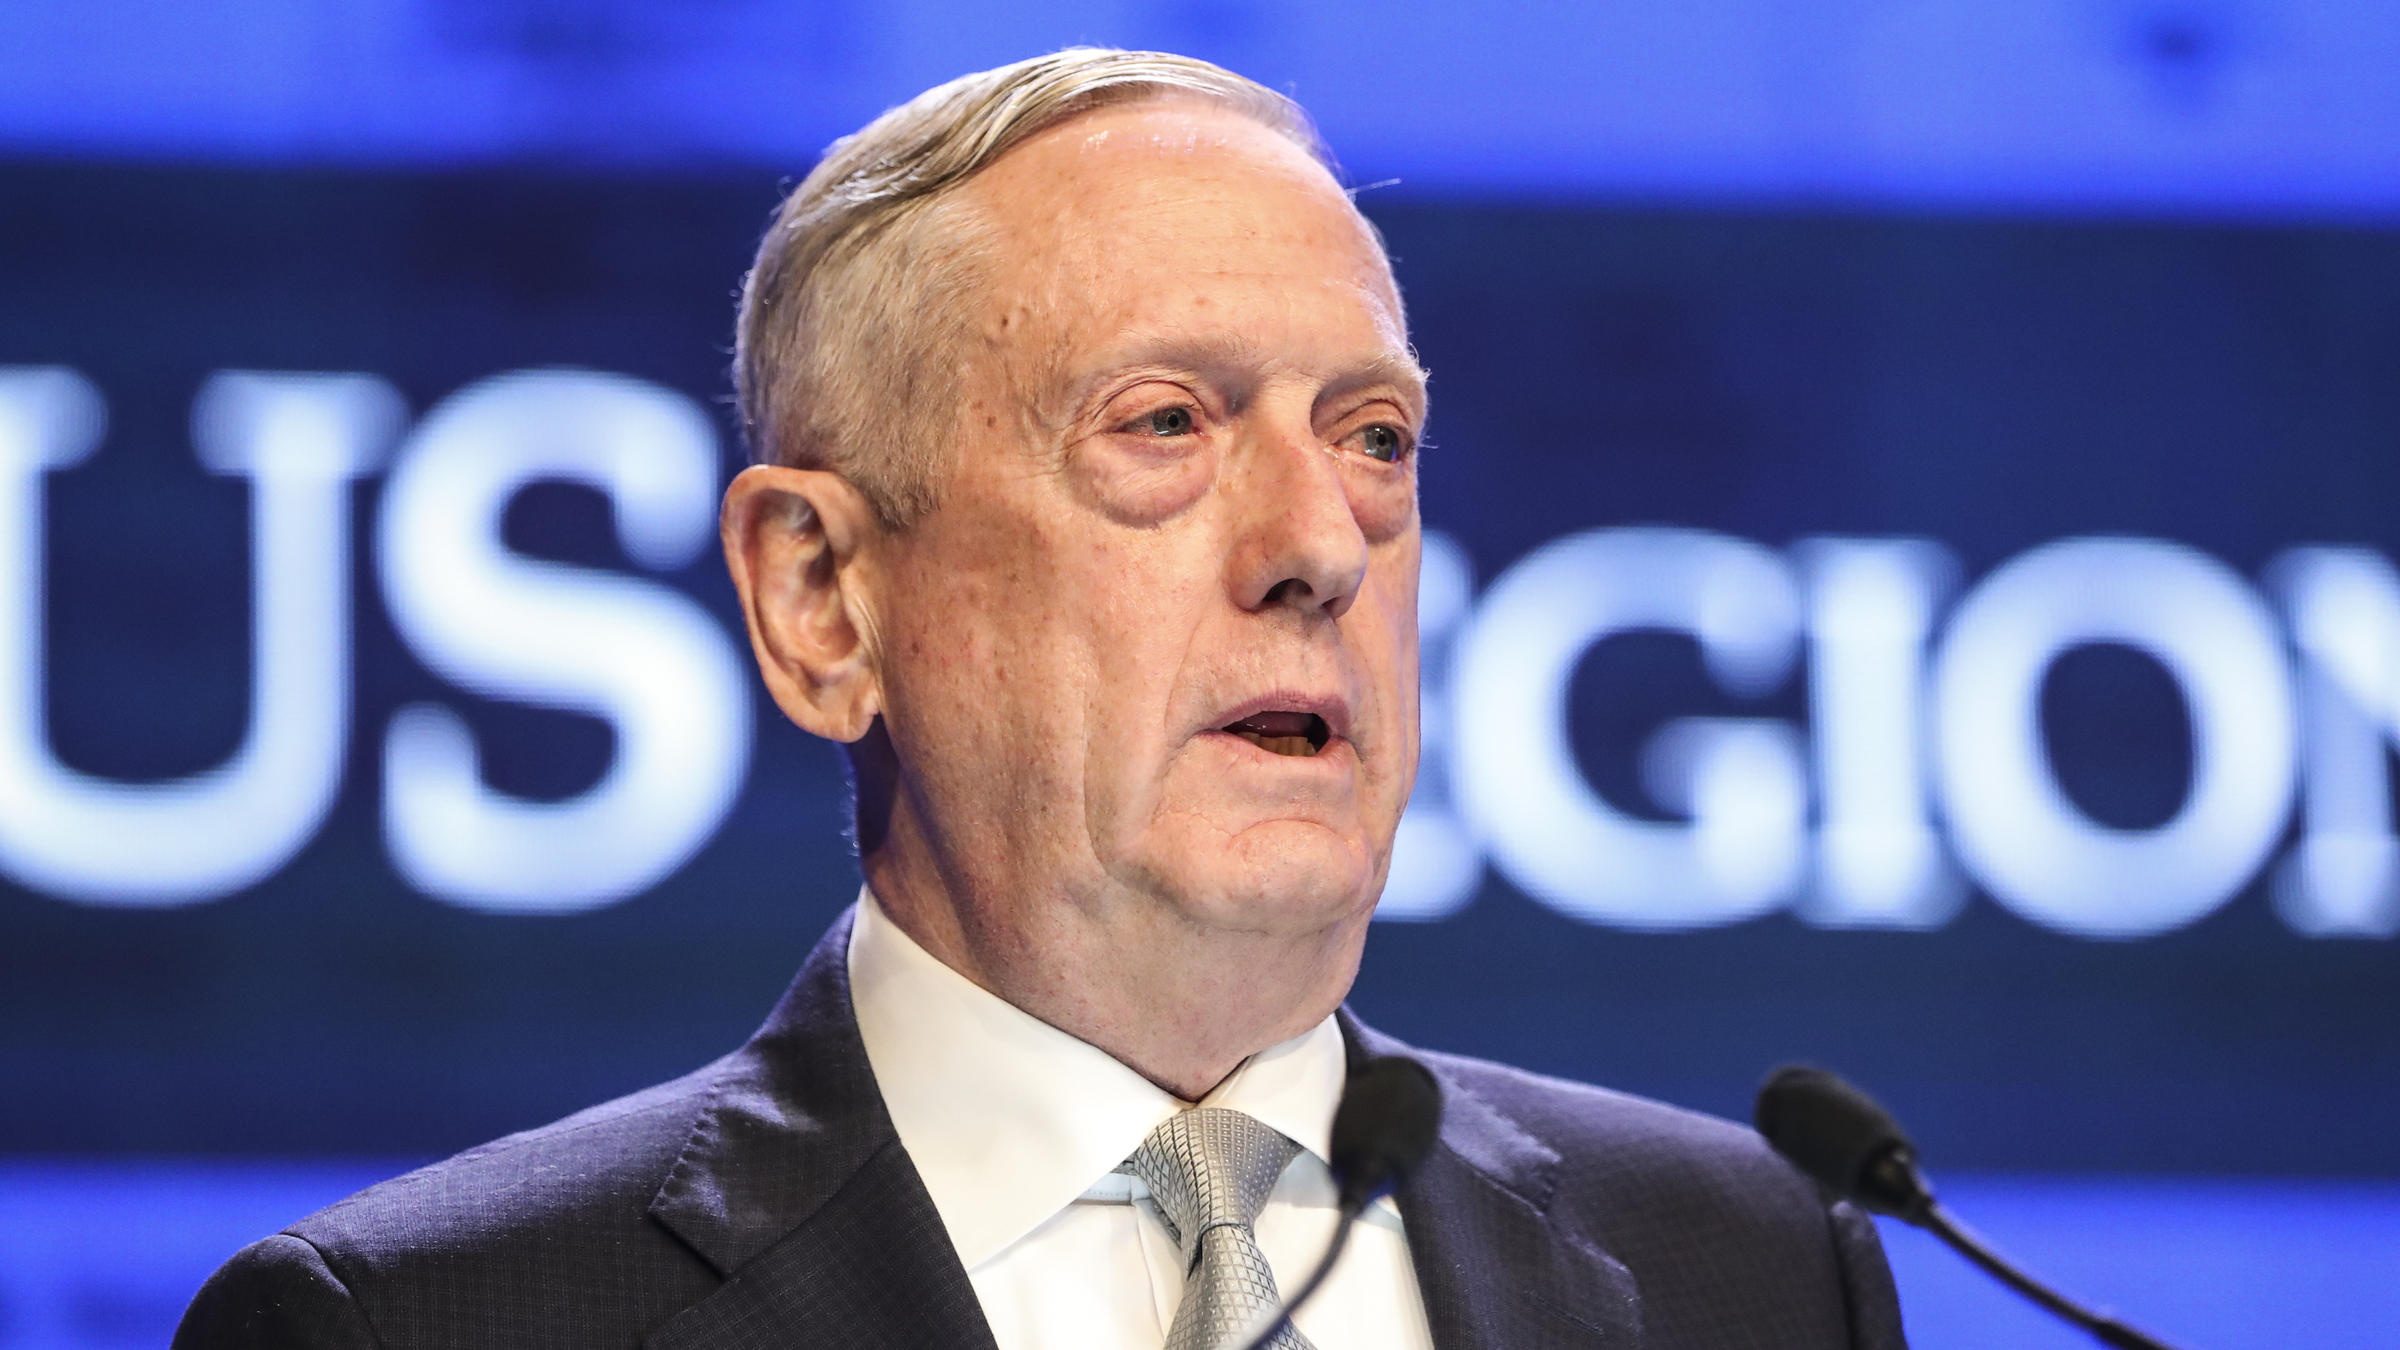 Mattis warns China over South China Sea